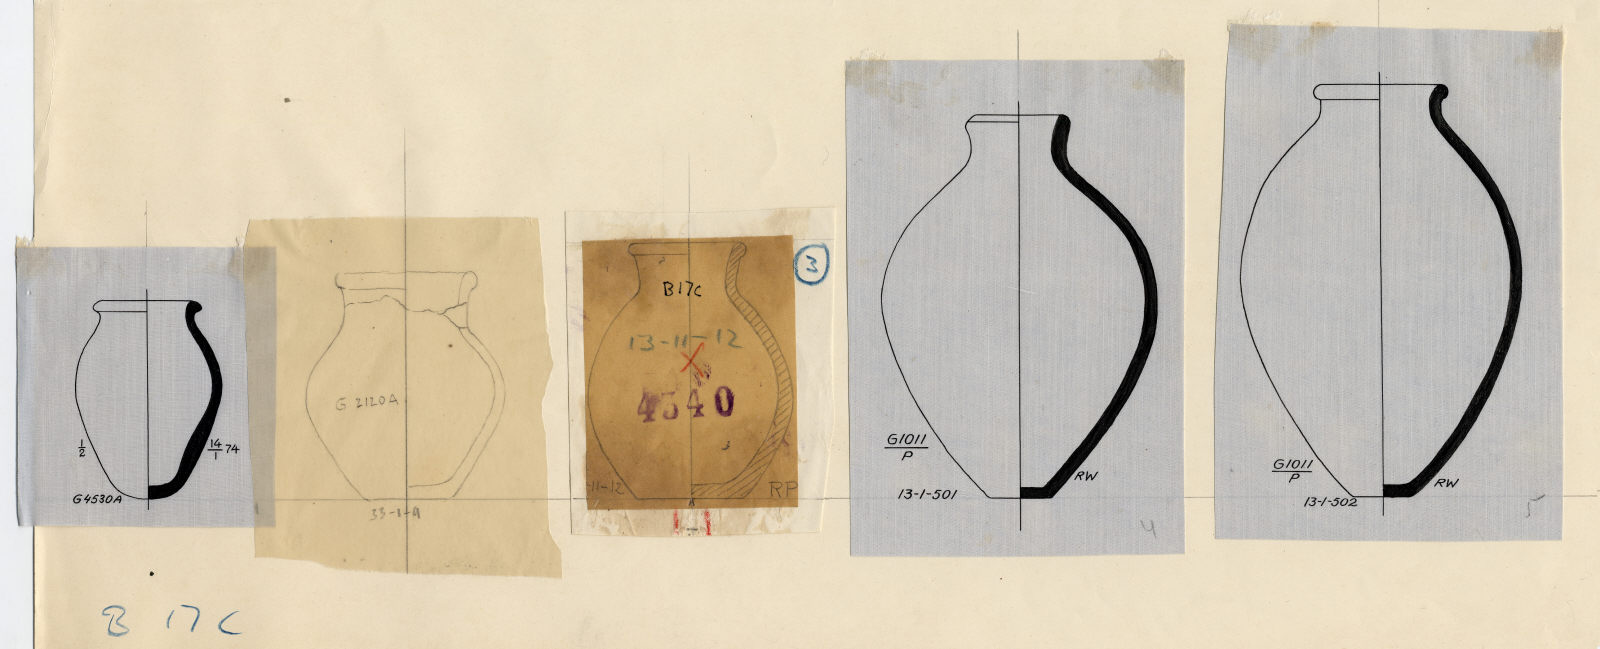 Drawings: Pottery jars from G 1011, G 2120, G 4140, G 4530